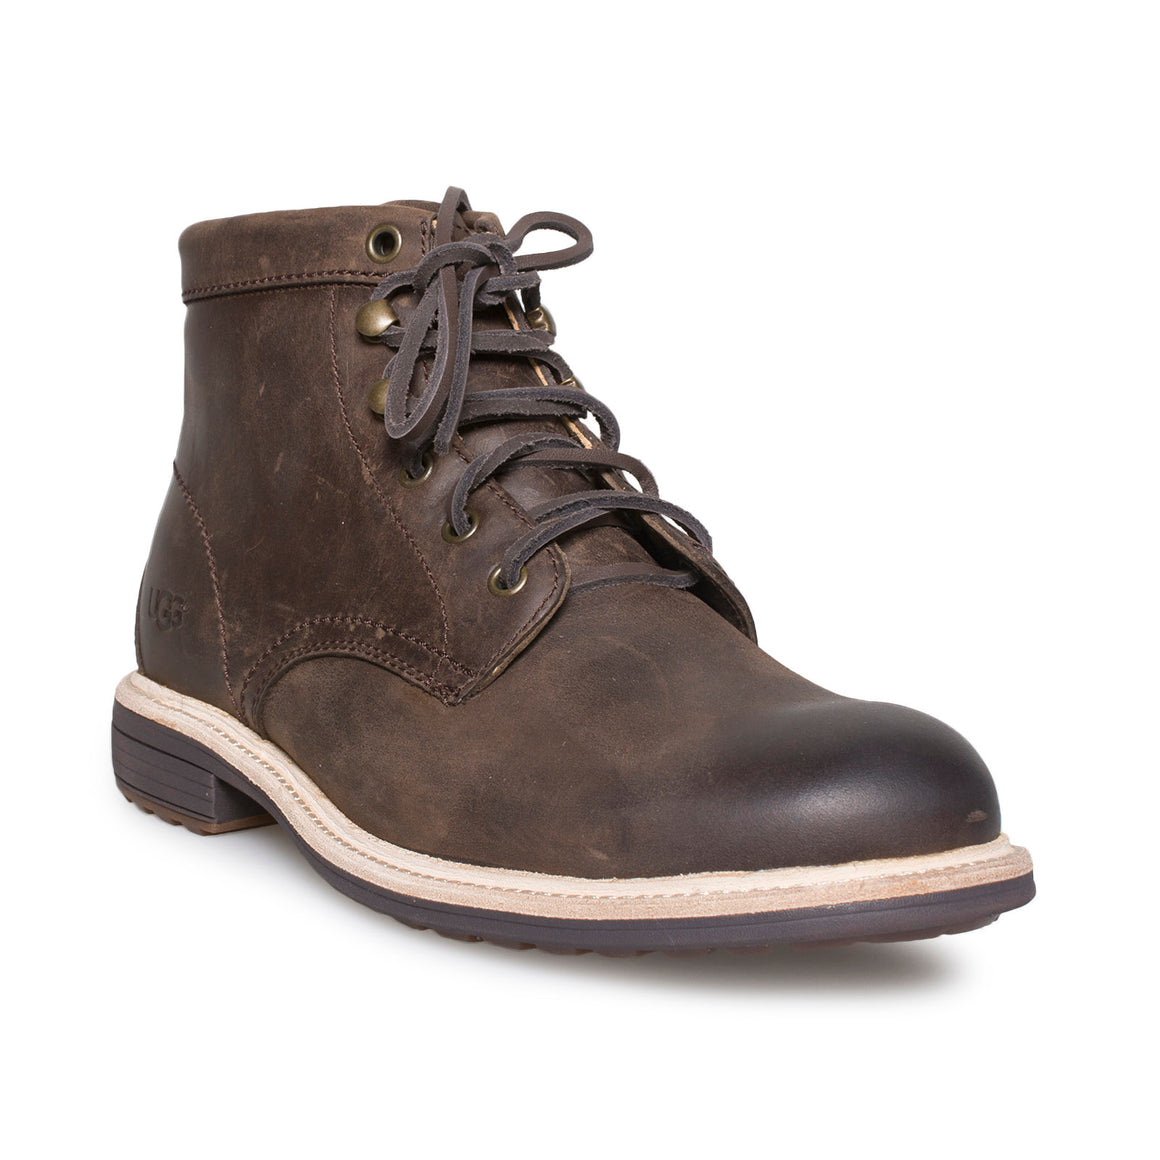 UGG Vestmar Grizzly Boots